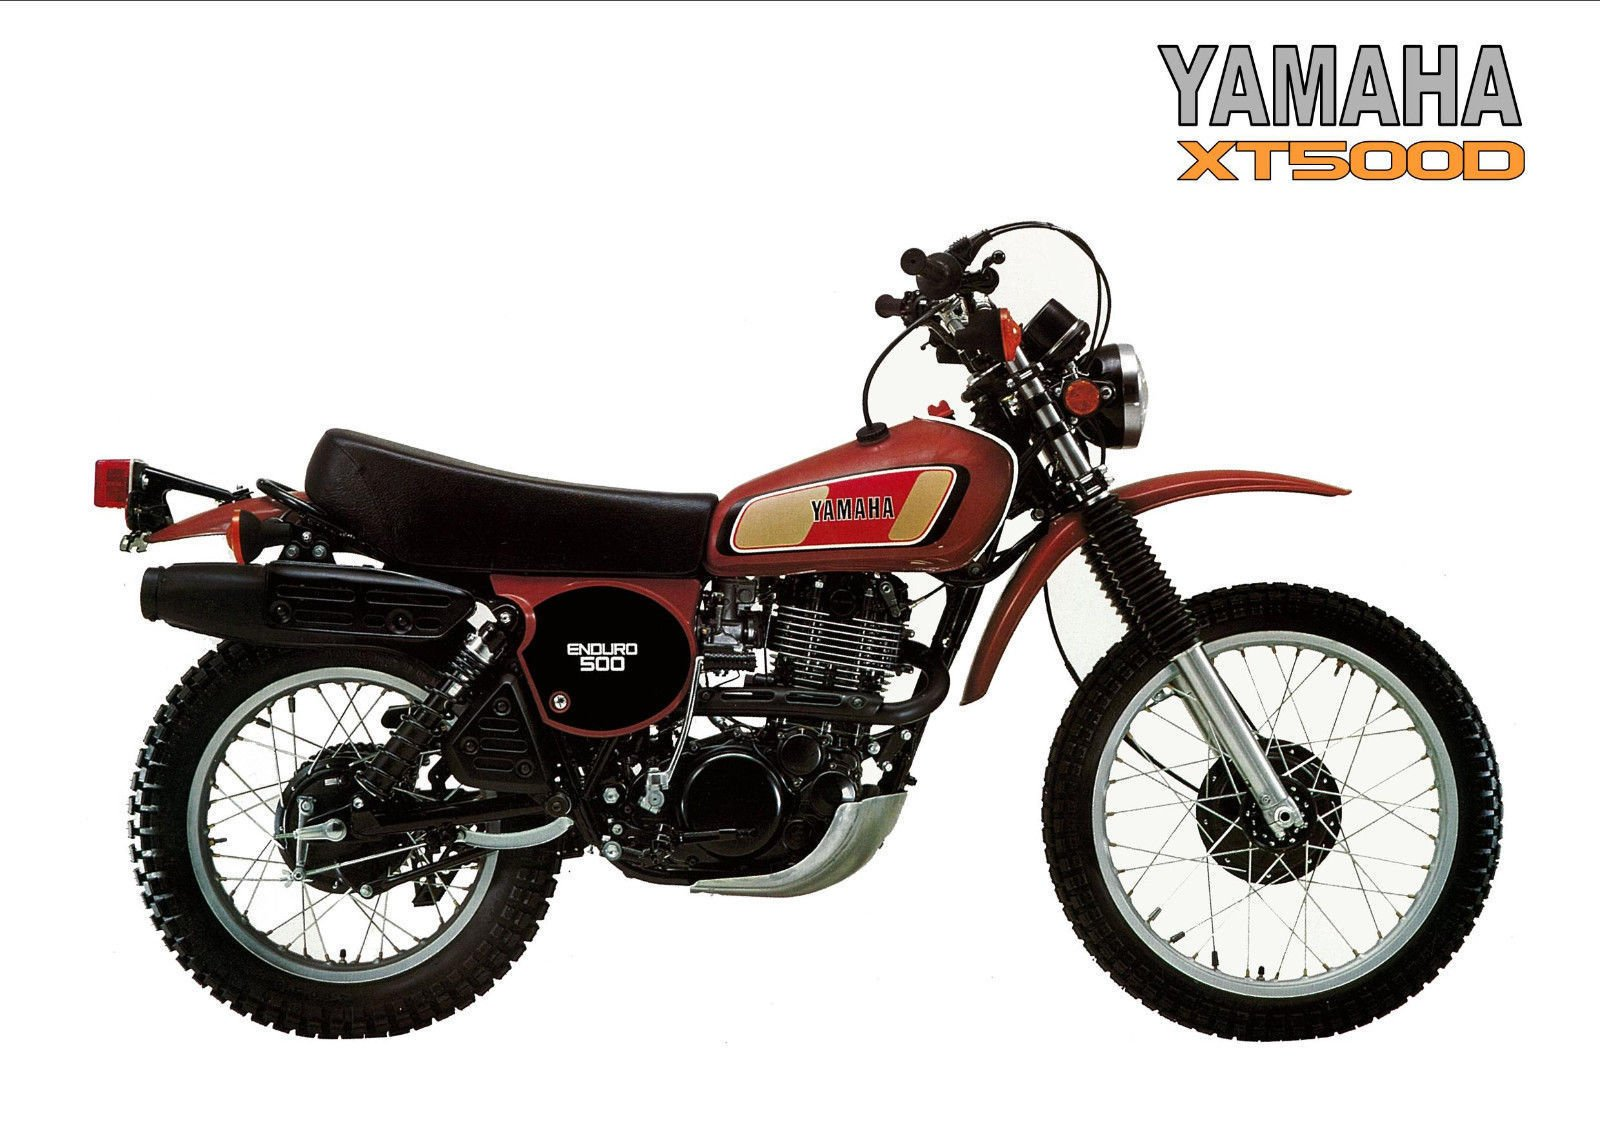 1976 Yamaha 500 Xt Wiring Diagram Question About Xt500 Decals Stickers Rh Thevintagespoke Com 1984 1979